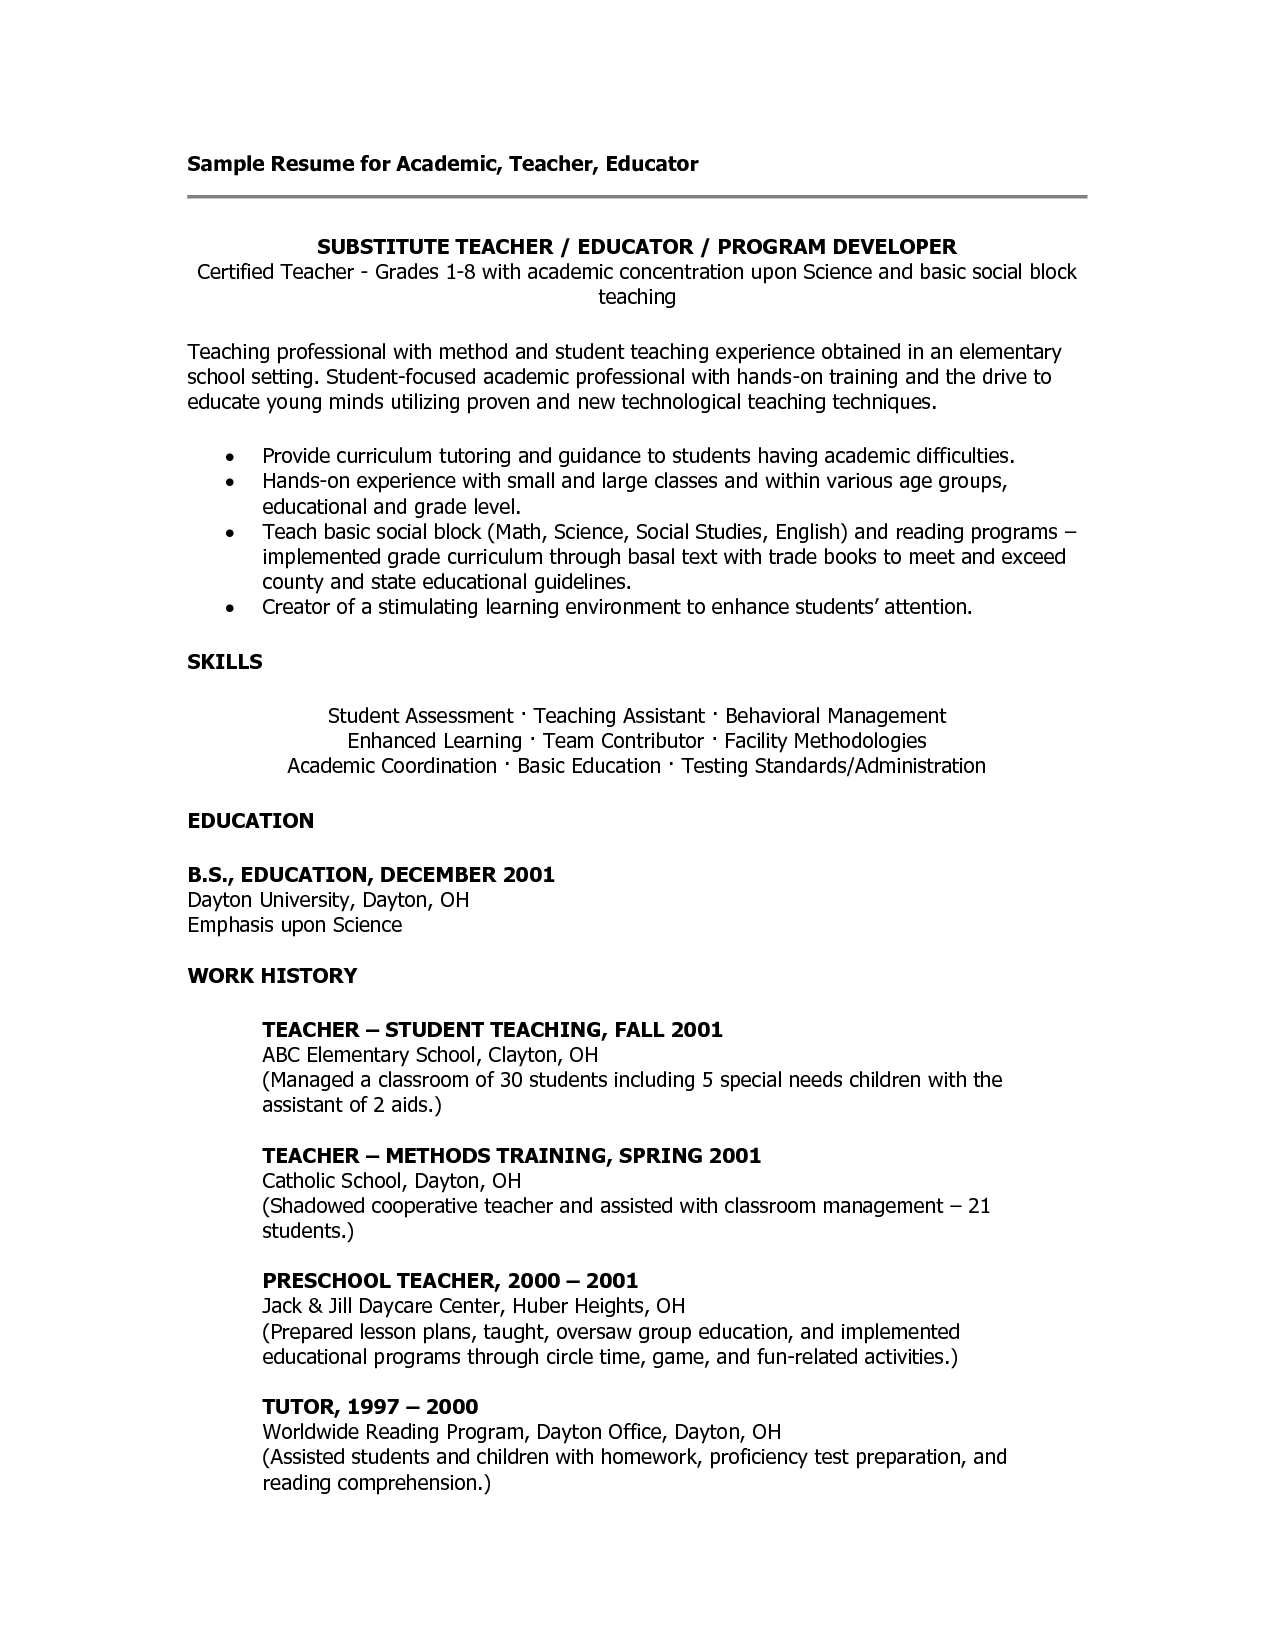 Teacher Resume Skills Section Sample Teacher Resumes Substitute Teacher Resume Fcs